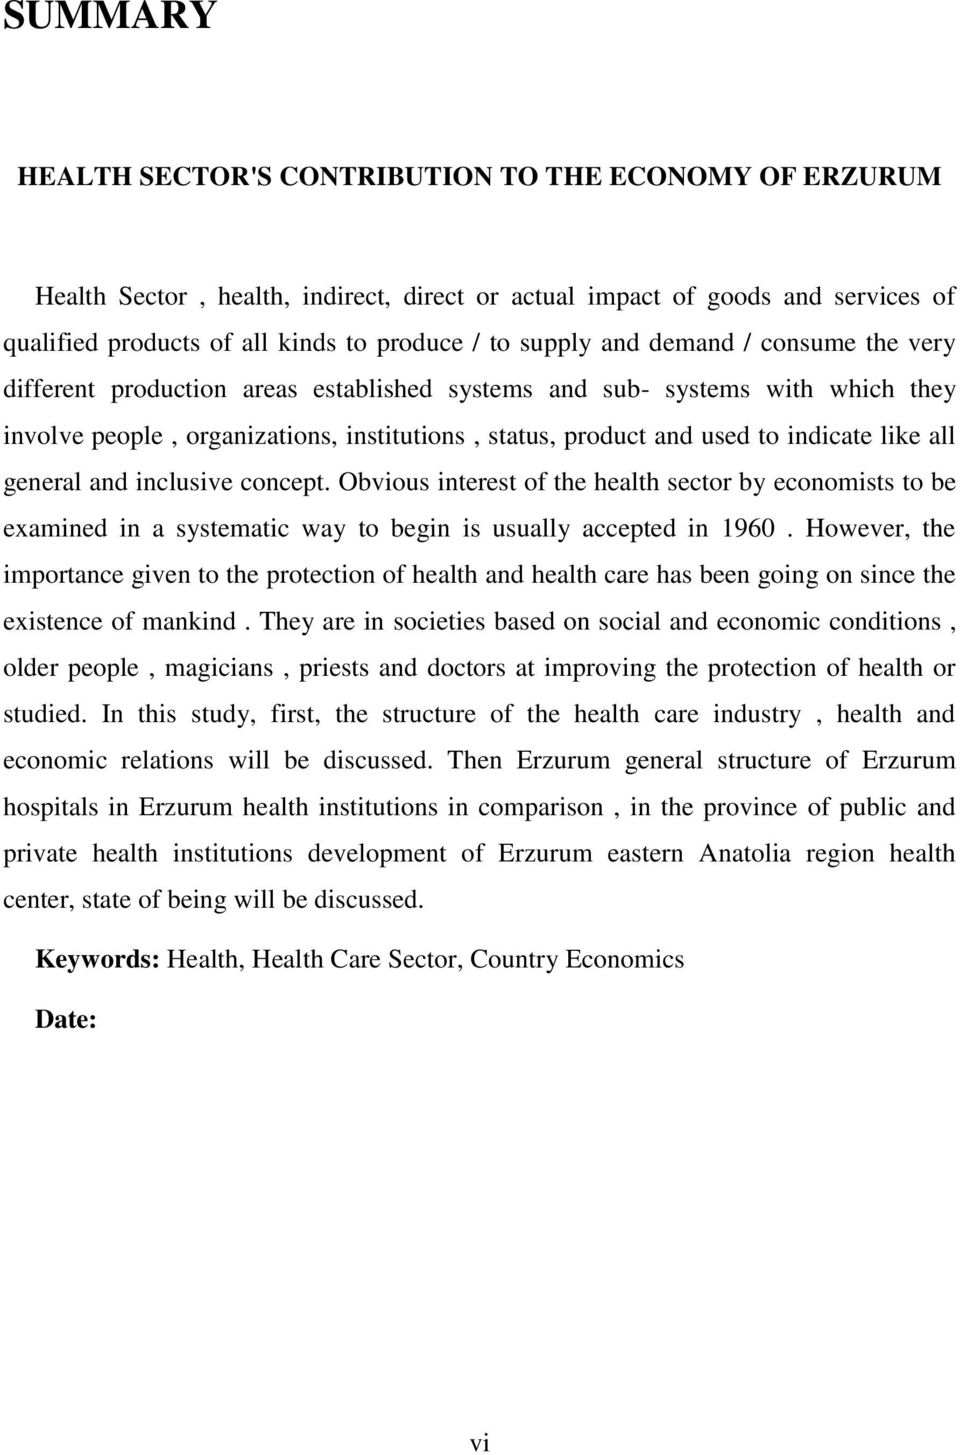 all general and inclusive concept. Obvious interest of the health sector by economists to be examined in a systematic way to begin is usually accepted in 1960.